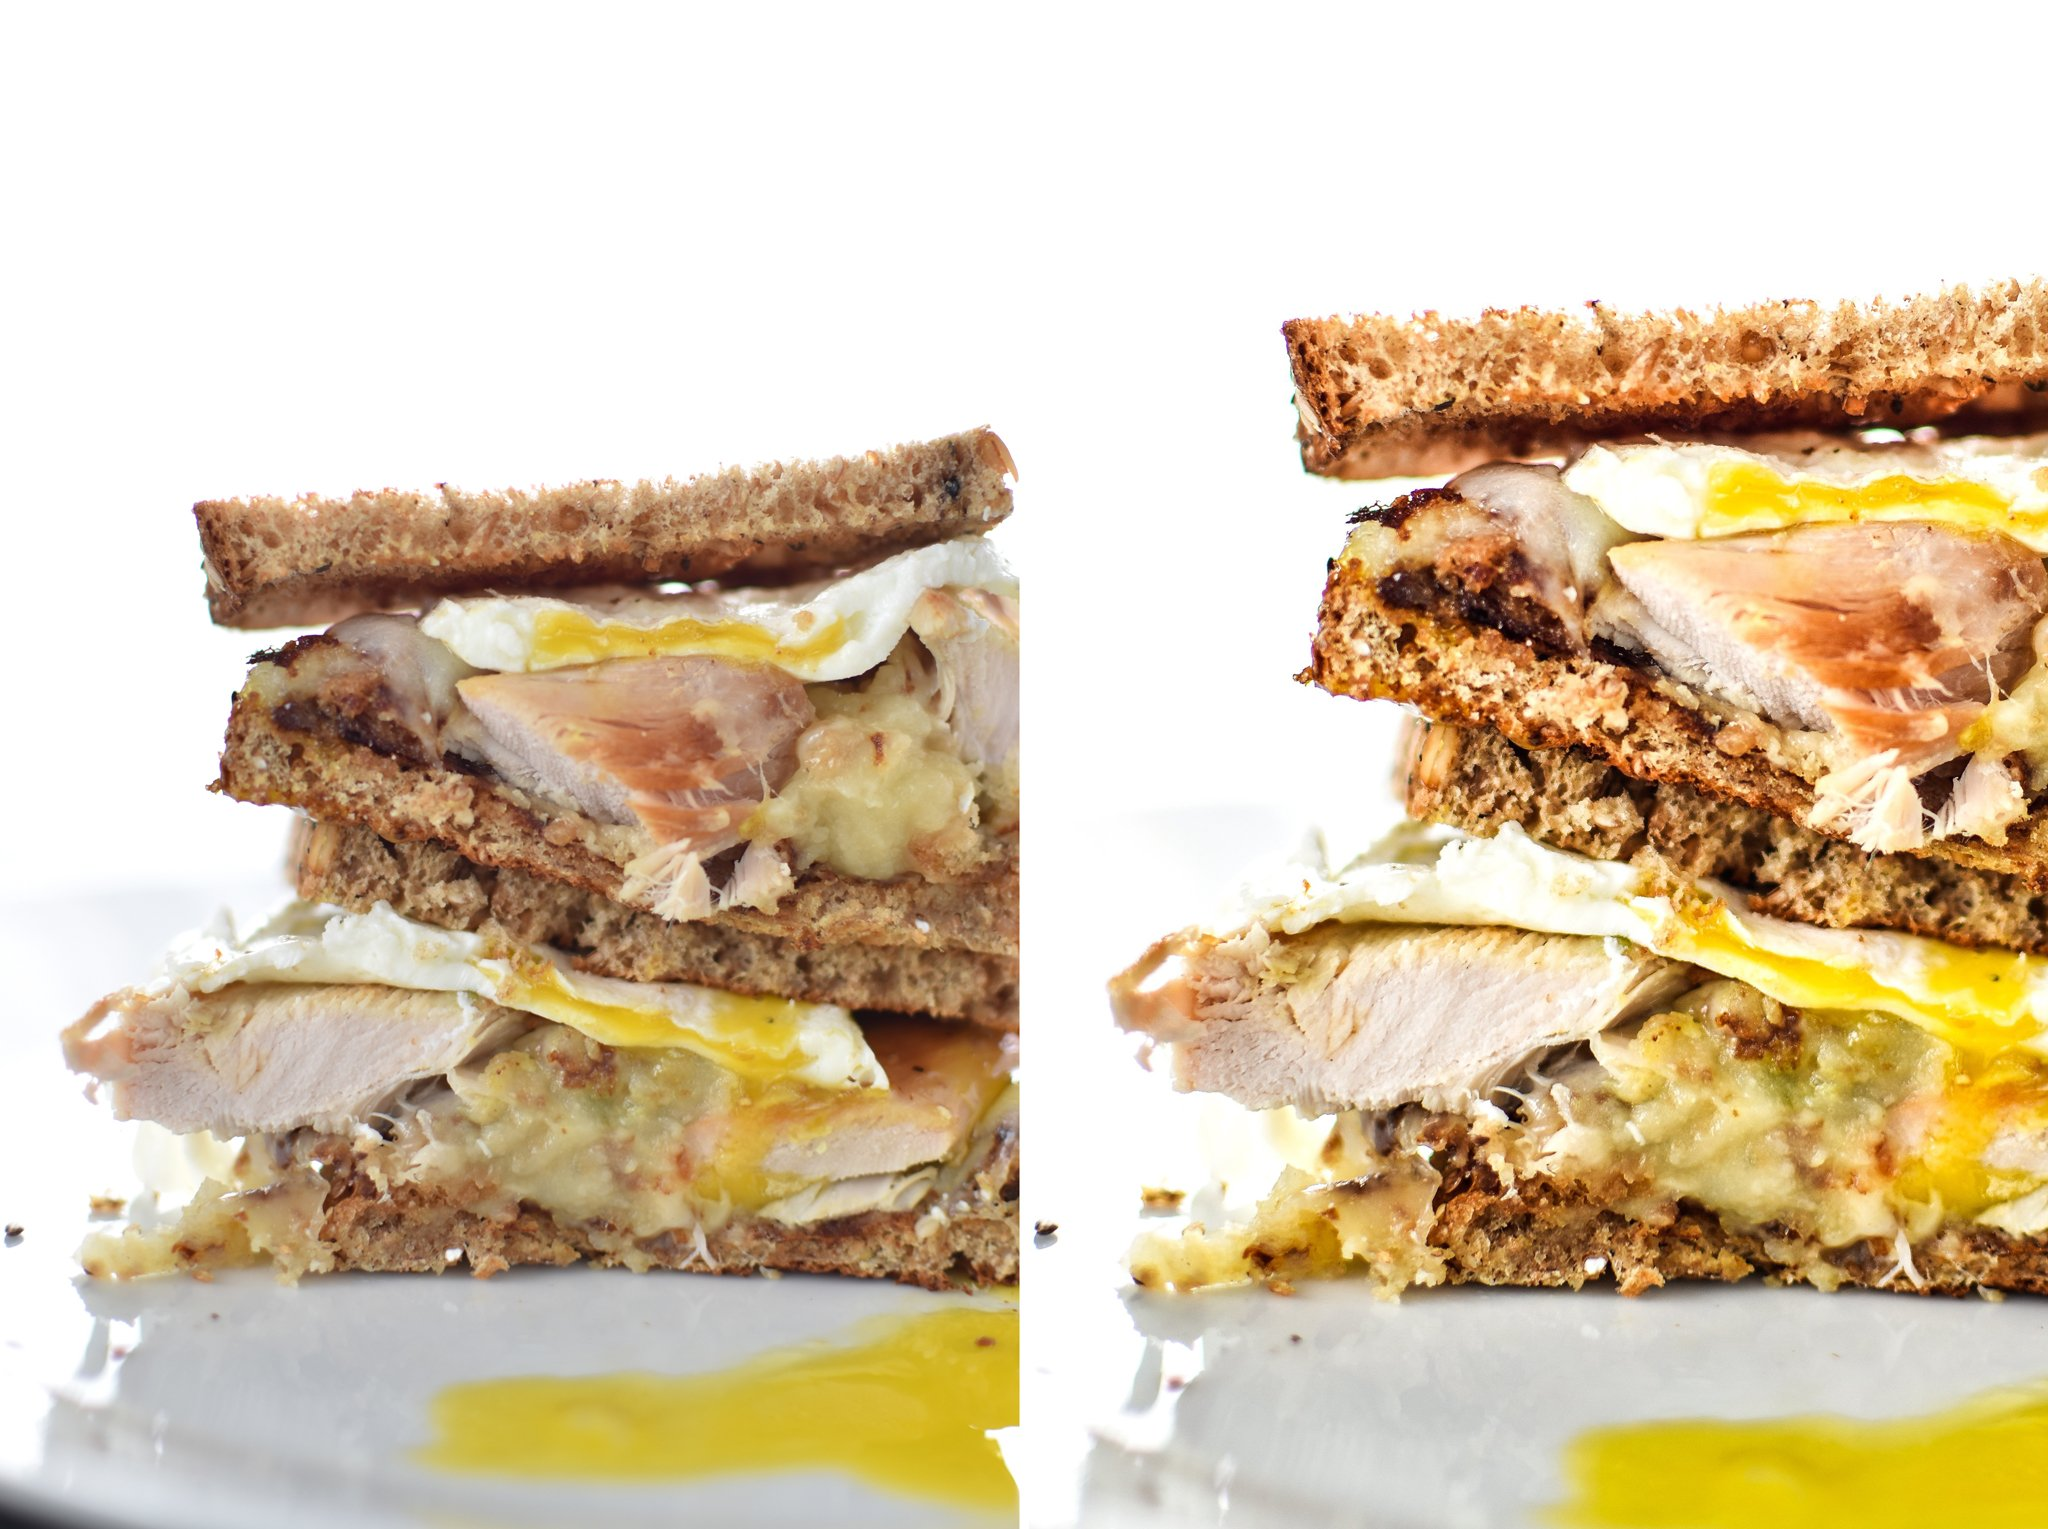 A picture of a sandwich cut in half, the left is unedited and the right is with edits.